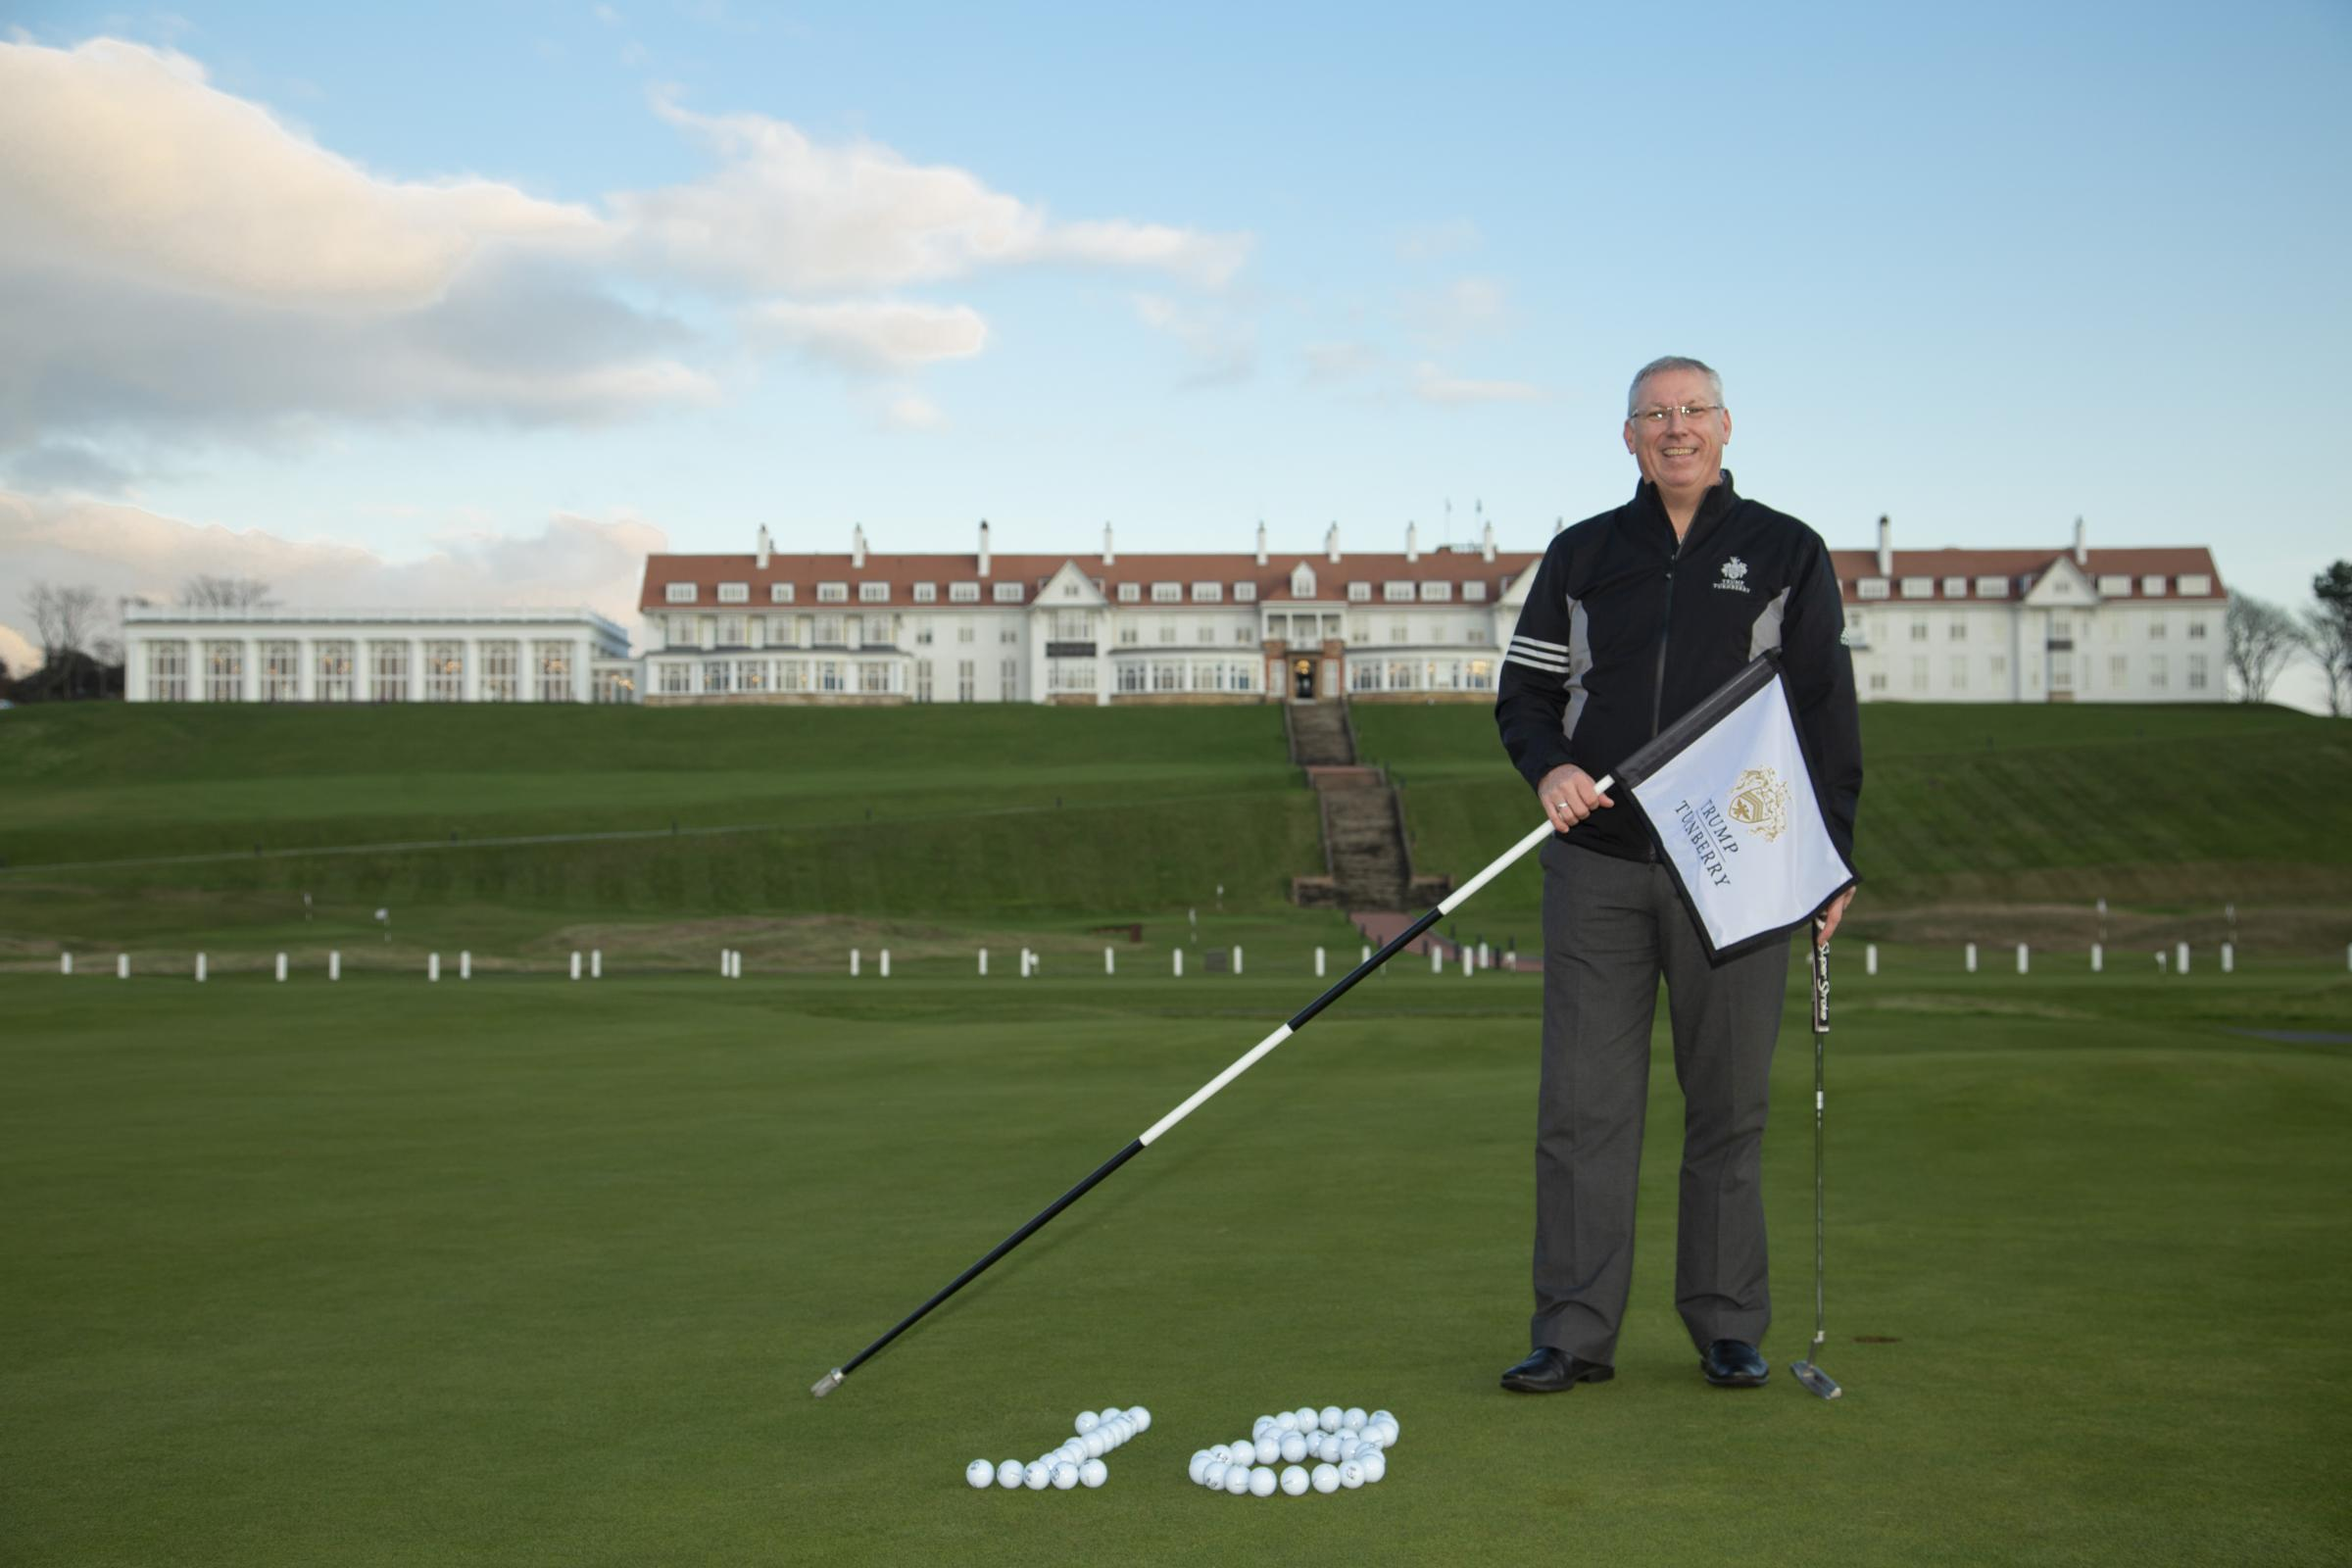 A quick 18 with Trump Turnberry's Director of Golf, Ricky Hall